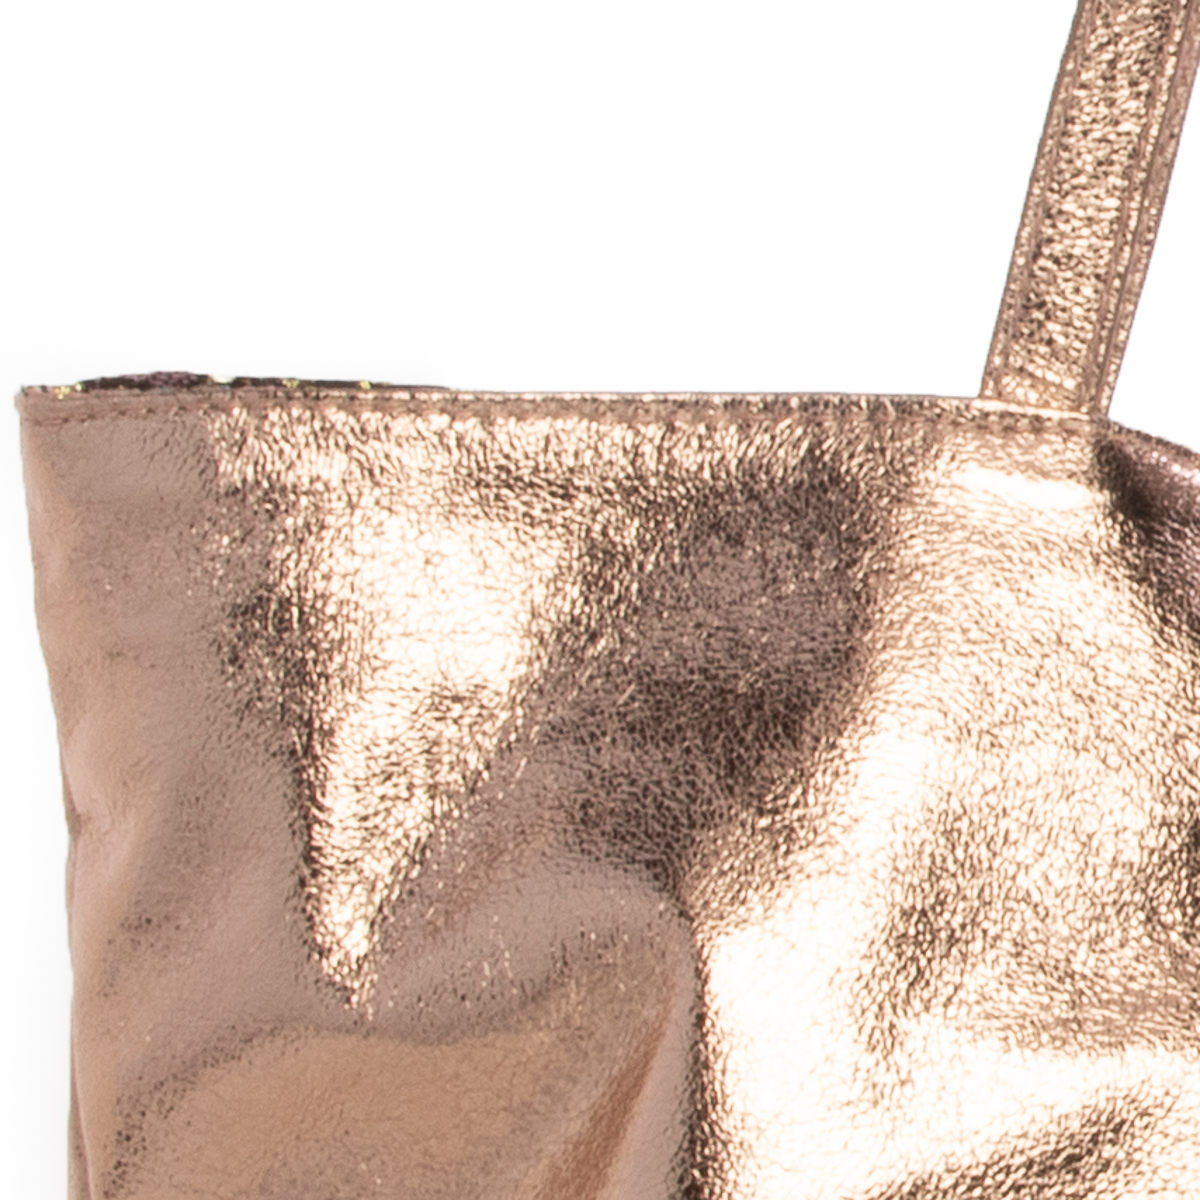 Steve-Madden-Handbags-For-Women-Tote-Bag-Reversible-with-Zip-Clutch-Purse thumbnail 20